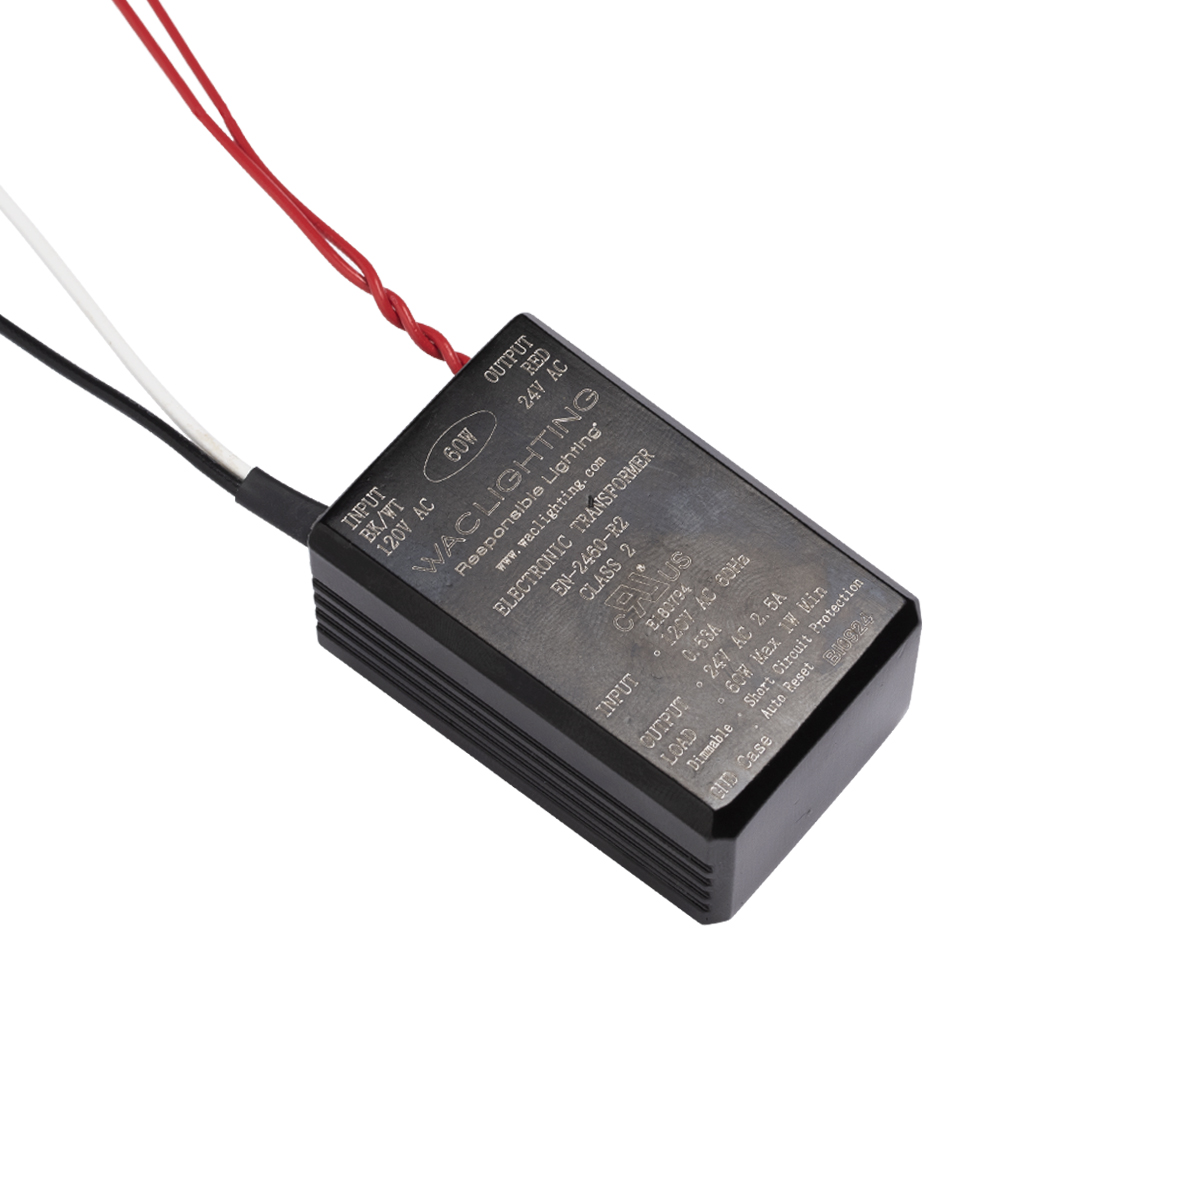 Black WAC Lighting EN-2460-P-AR-S 120V Input 24V Output 60W Plug-in Electronic Transformer for Line and Straight Edge